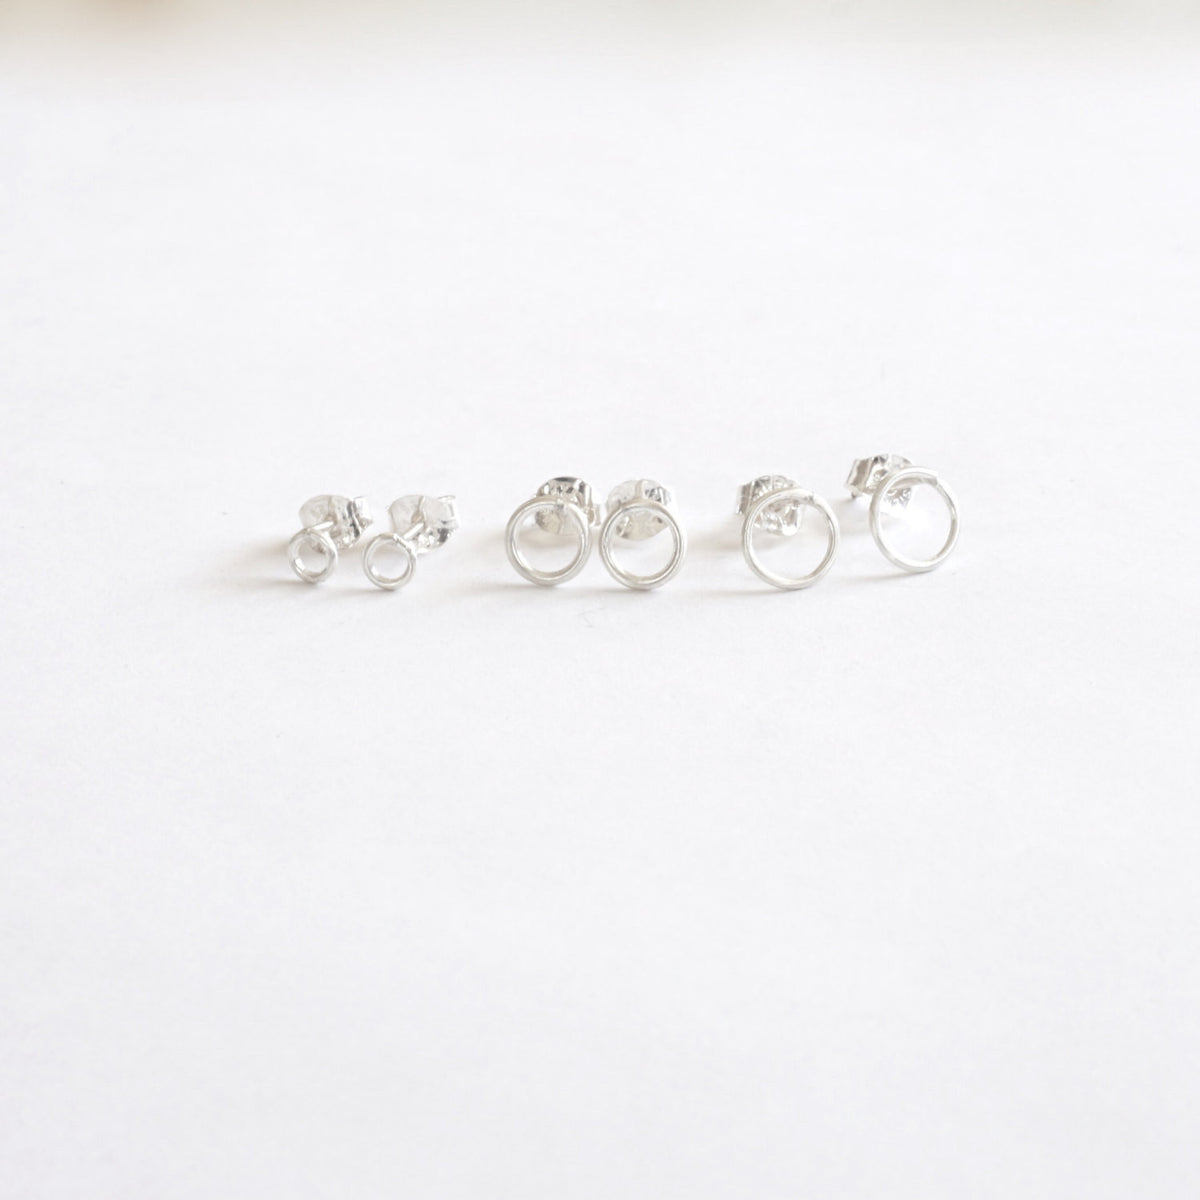 Classic and Stylish, Hand-Crafted Set of Three Small Open Circle Stud Earrings - 0208 - Virginia Wynne Designs